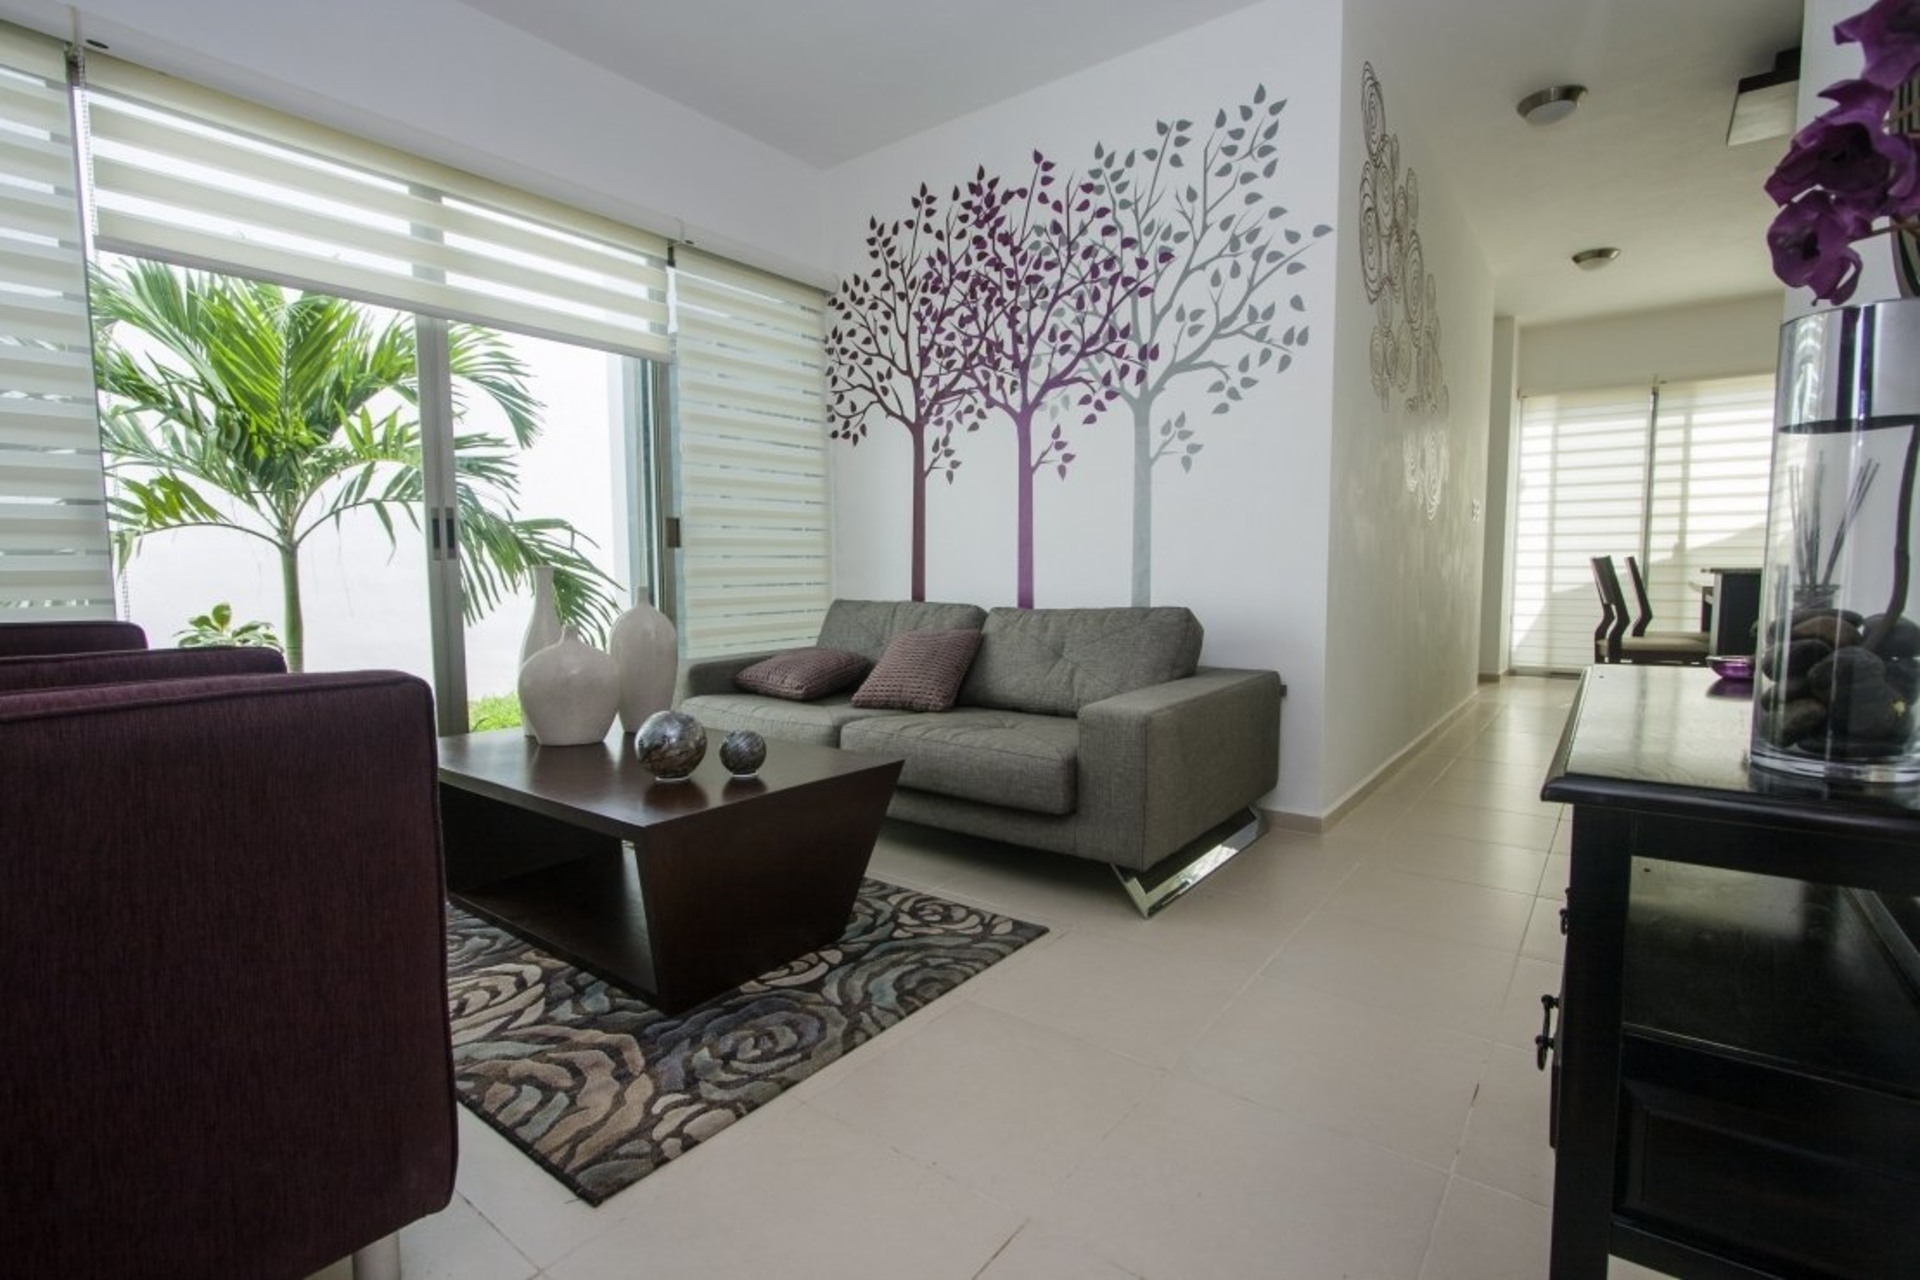 image 2 - House For sale Autres pays / Other countries - 5 rooms